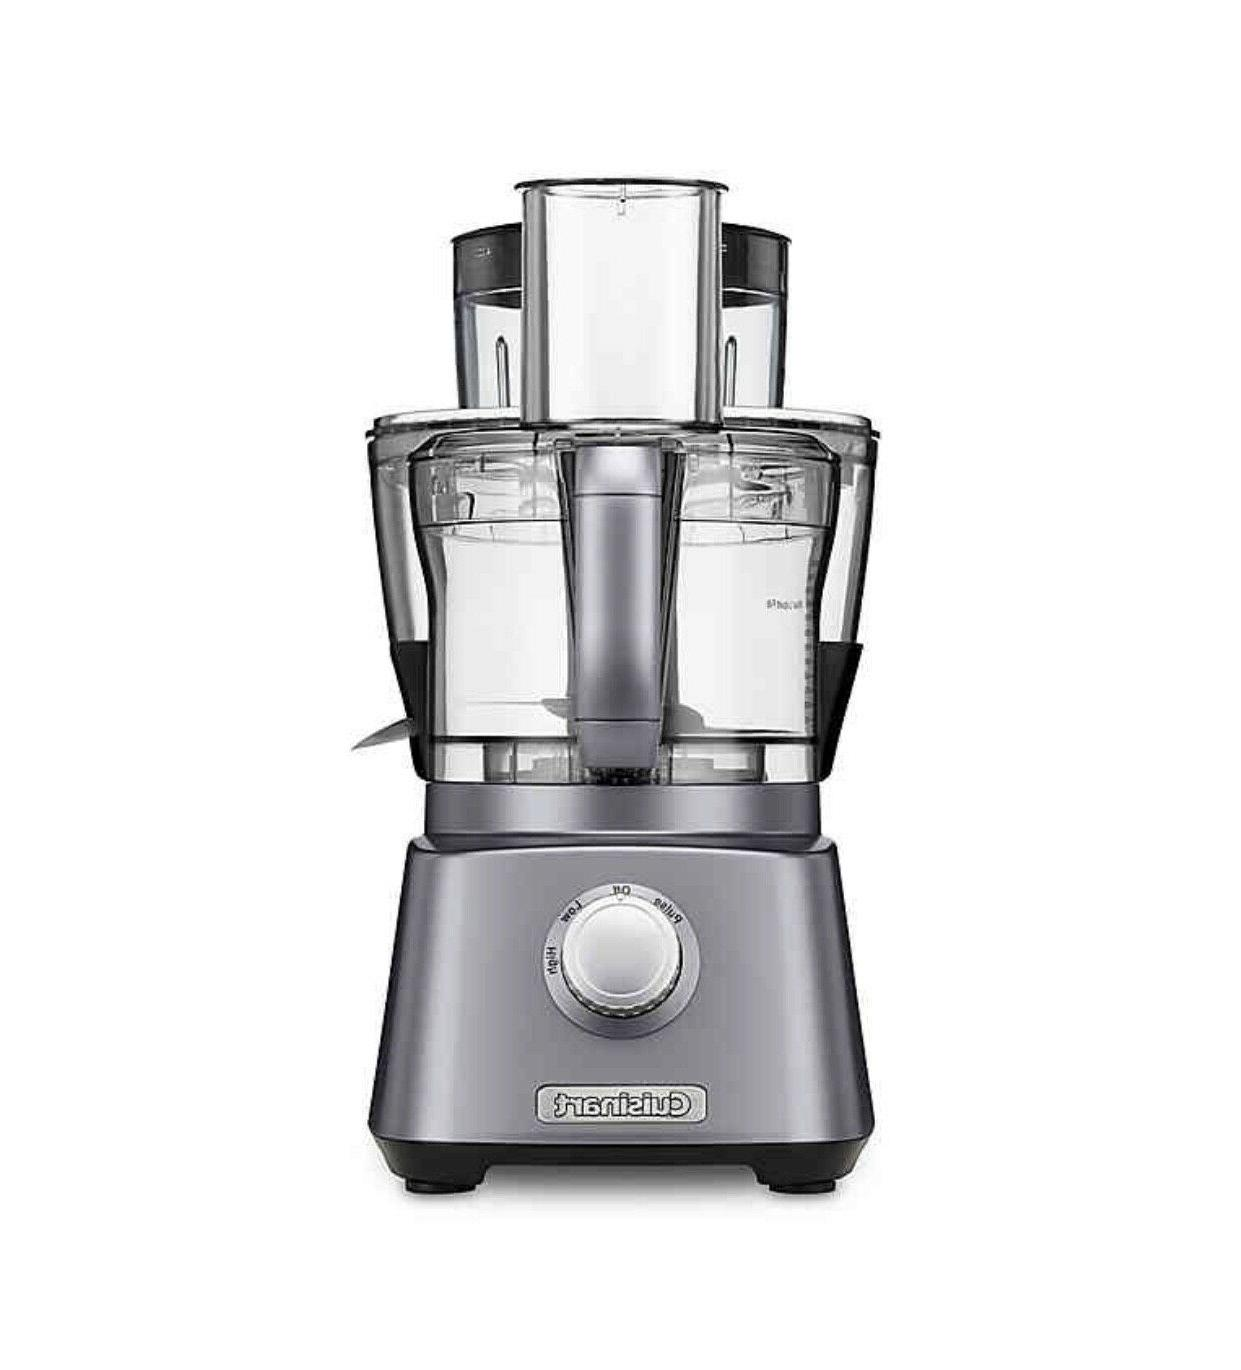 Cuisinart Kitchen Central Blender, and Processor in